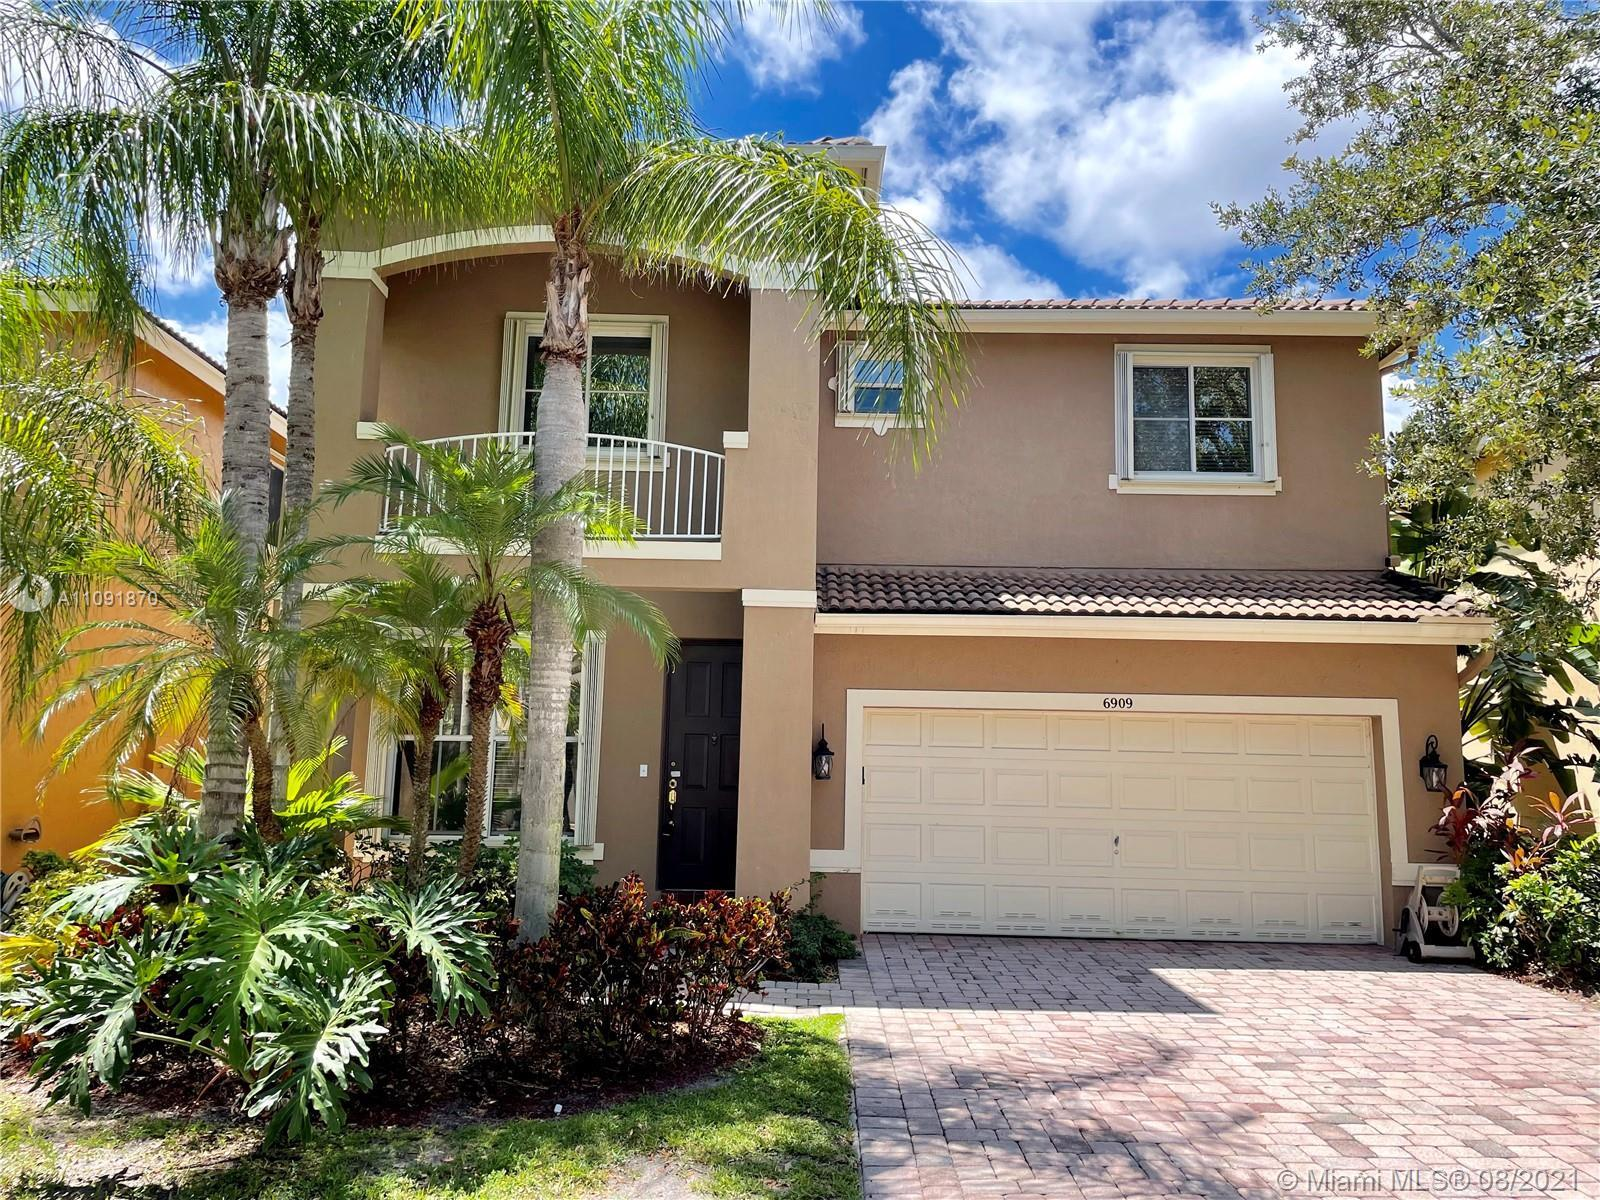 JUST REDUCED! Amazing opportunity to live in the highly desirable community of Cocoplum! This 2 stor